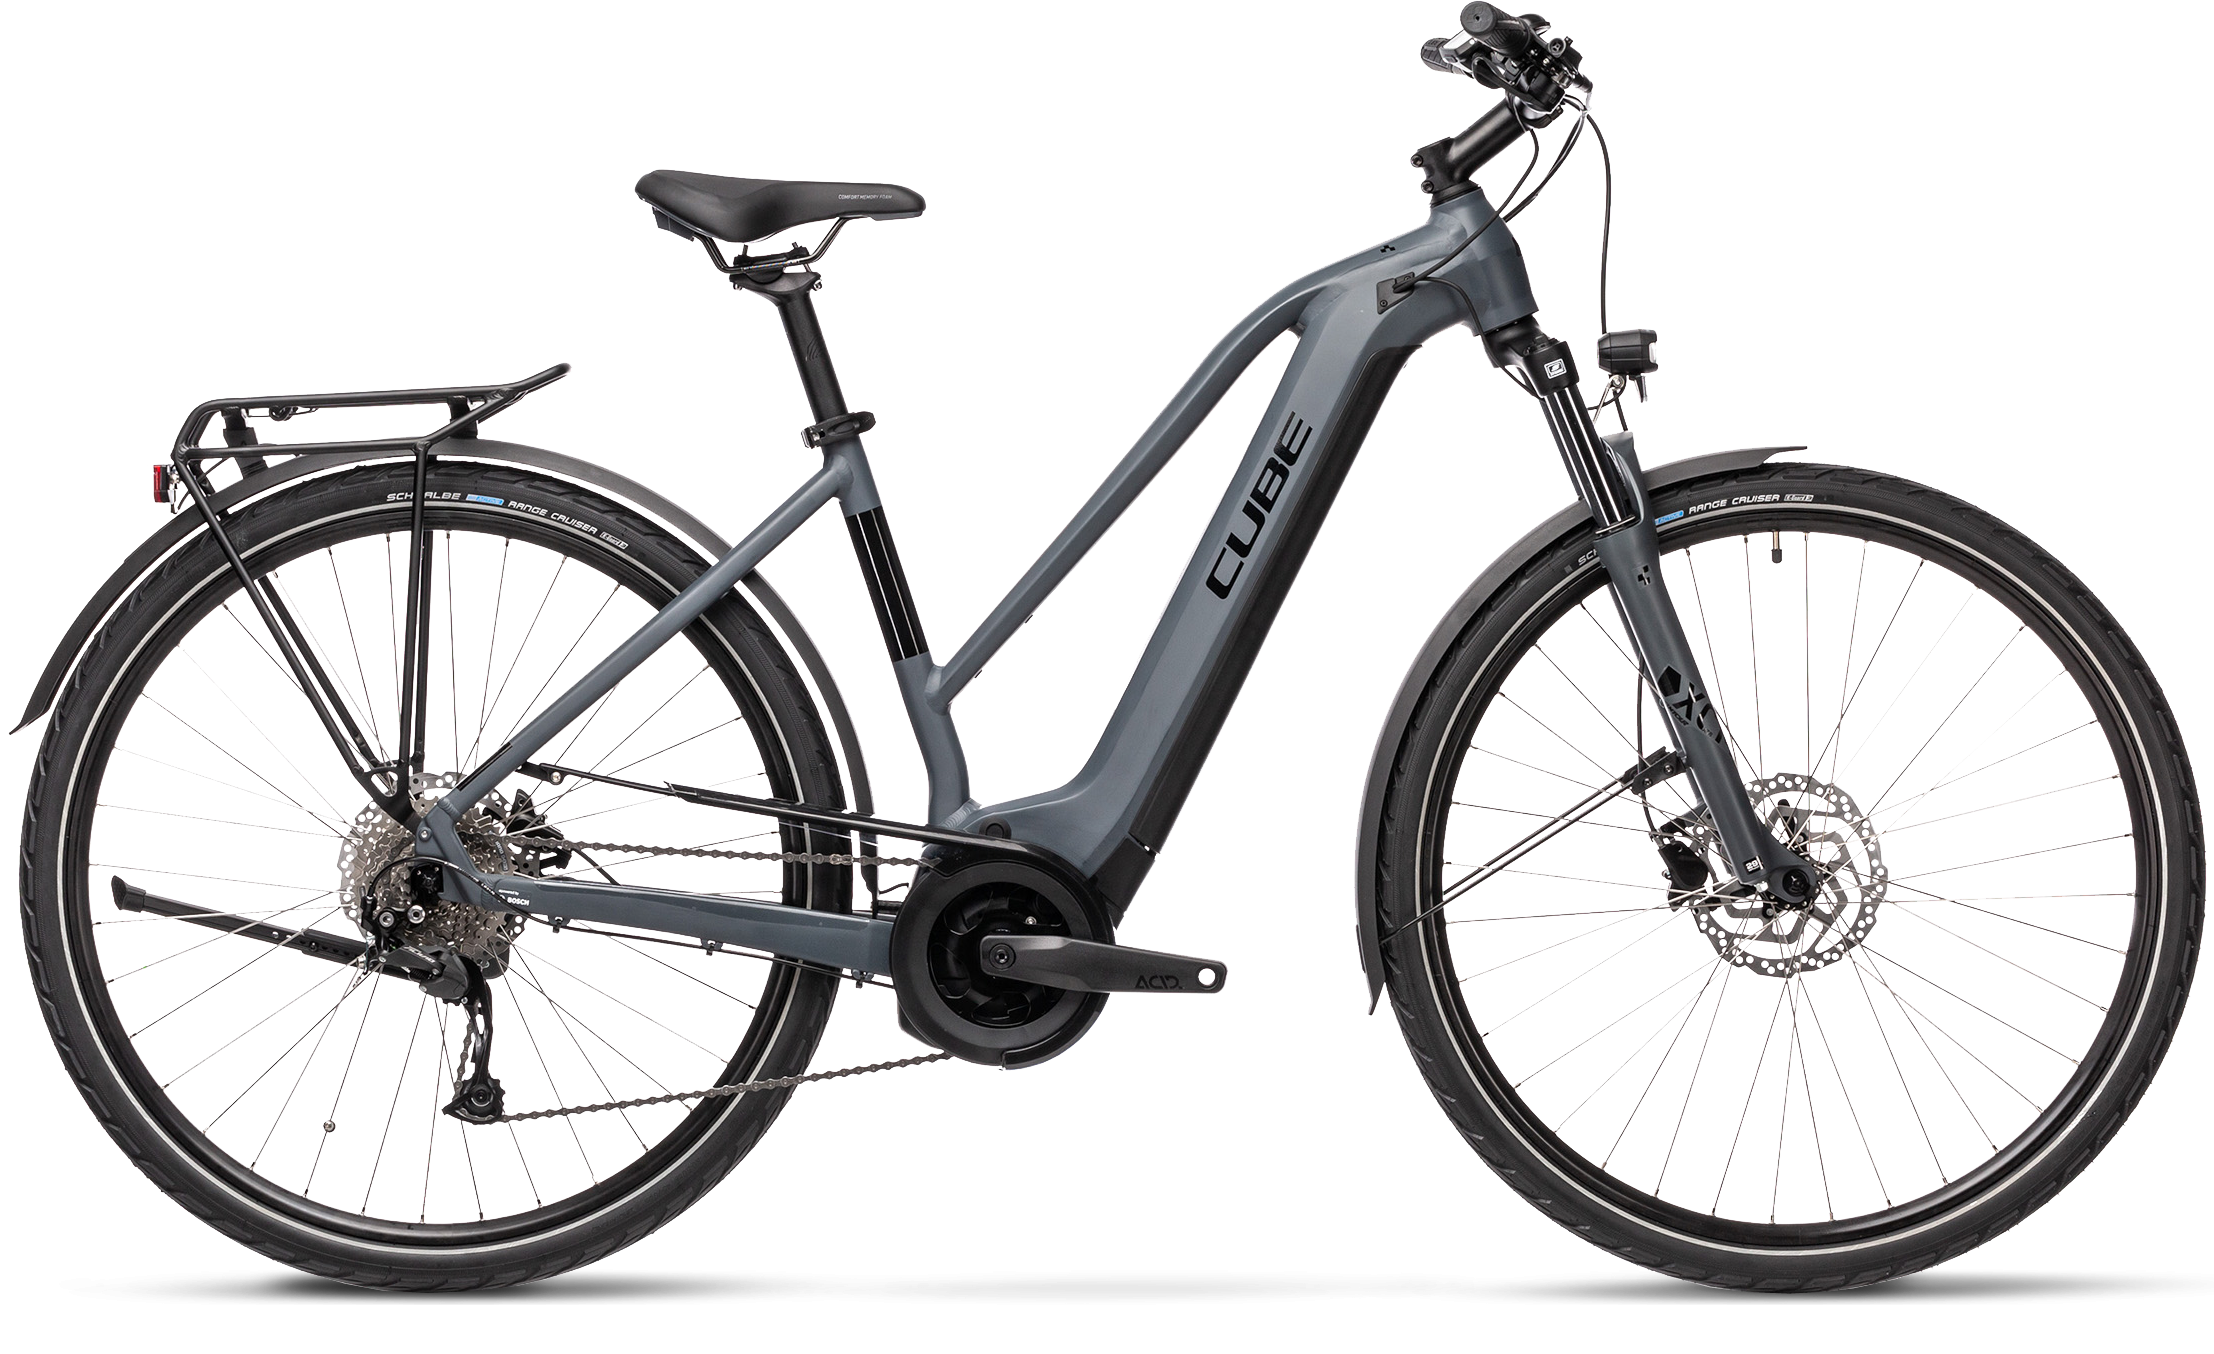 https://w8w5m3f8.stackpathcdn.com/23443/vtc-electrique-cube-touring-hybrid-one-400-500-625wh-cadre-mixte.jpg